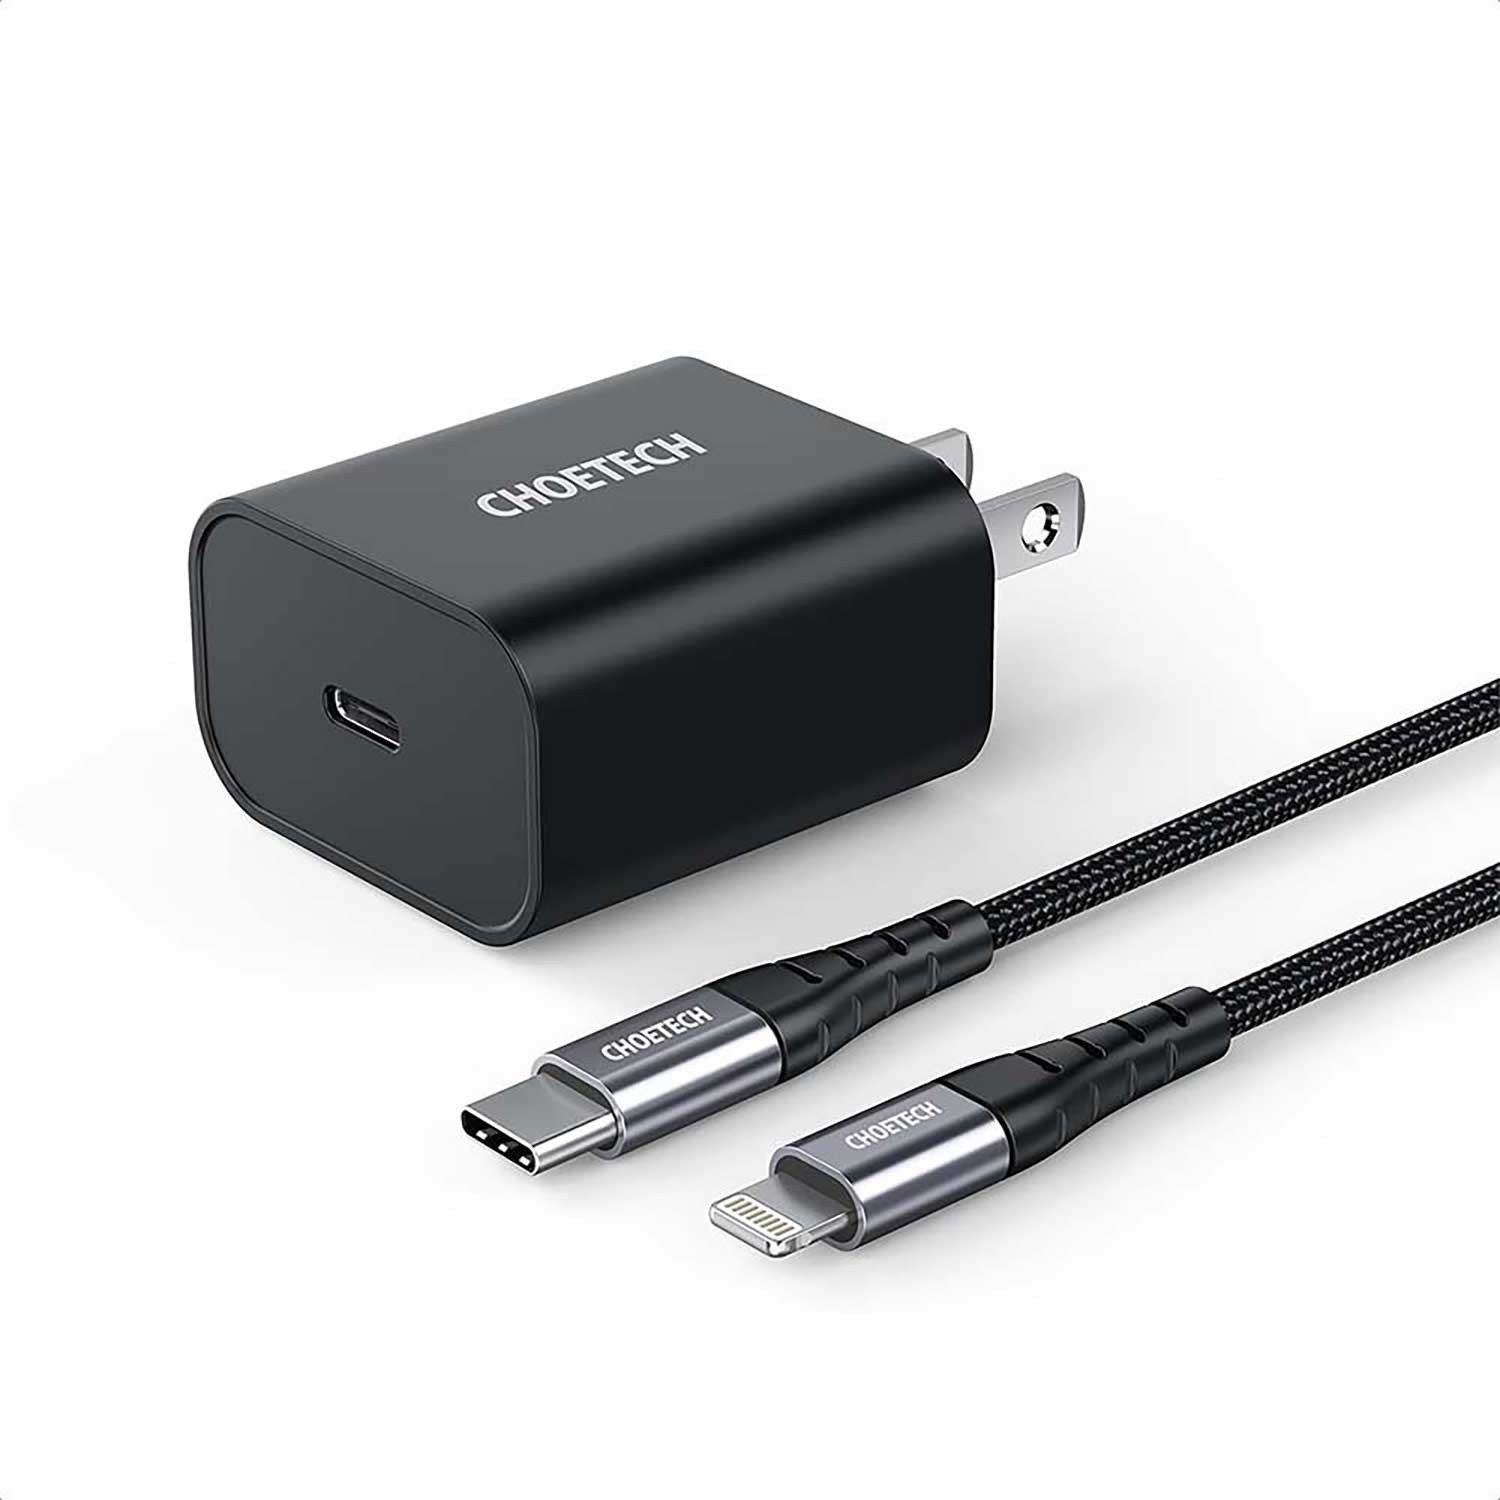 AC Charger CHOETECH USB-C PD 18W Black with Lightning cable